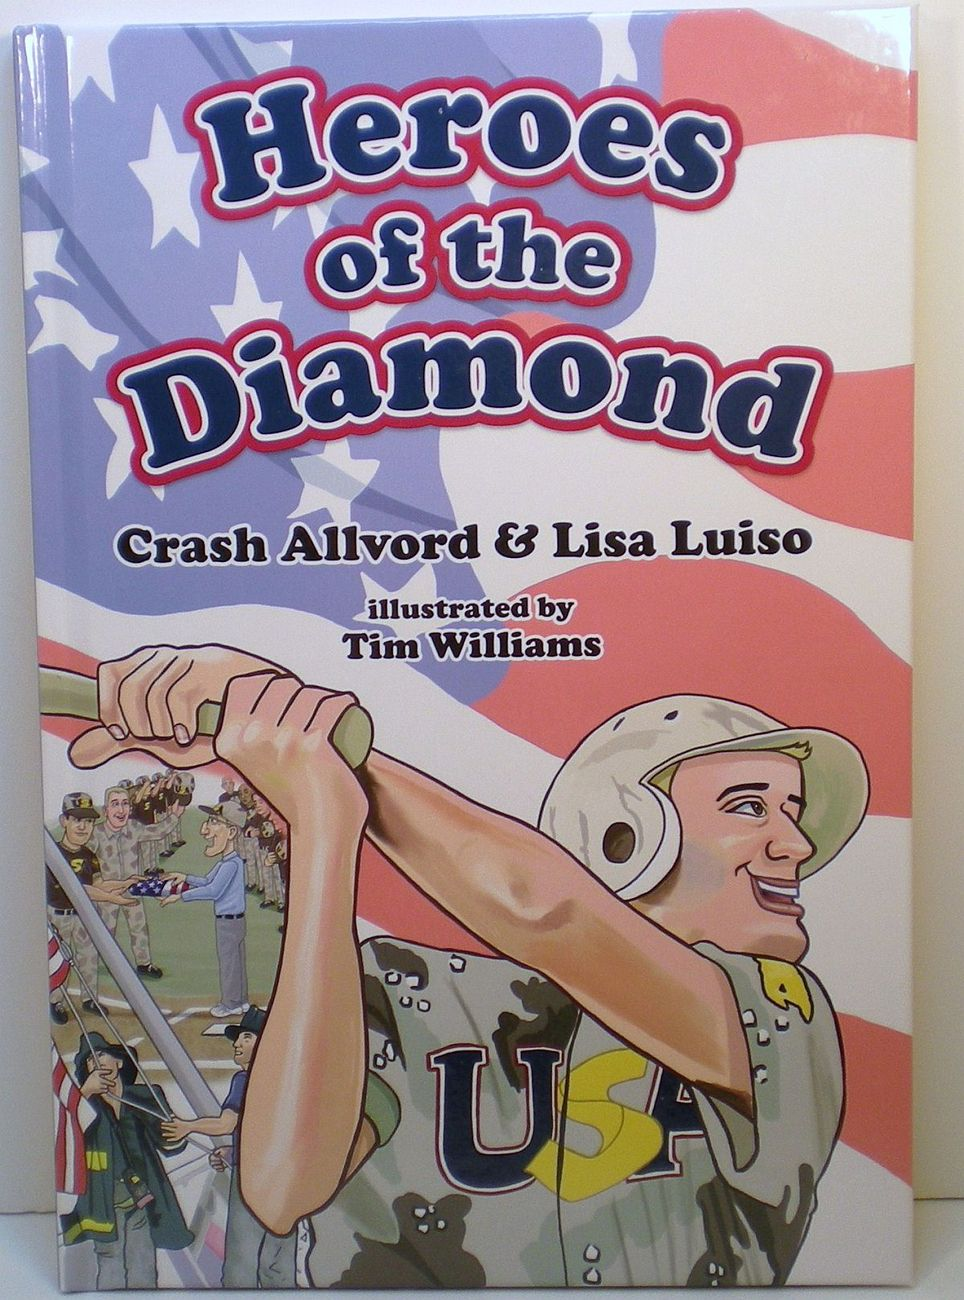 Heroes of the Diamond by C. Allvord, L. Luiso, T. Williams Illust, 2011